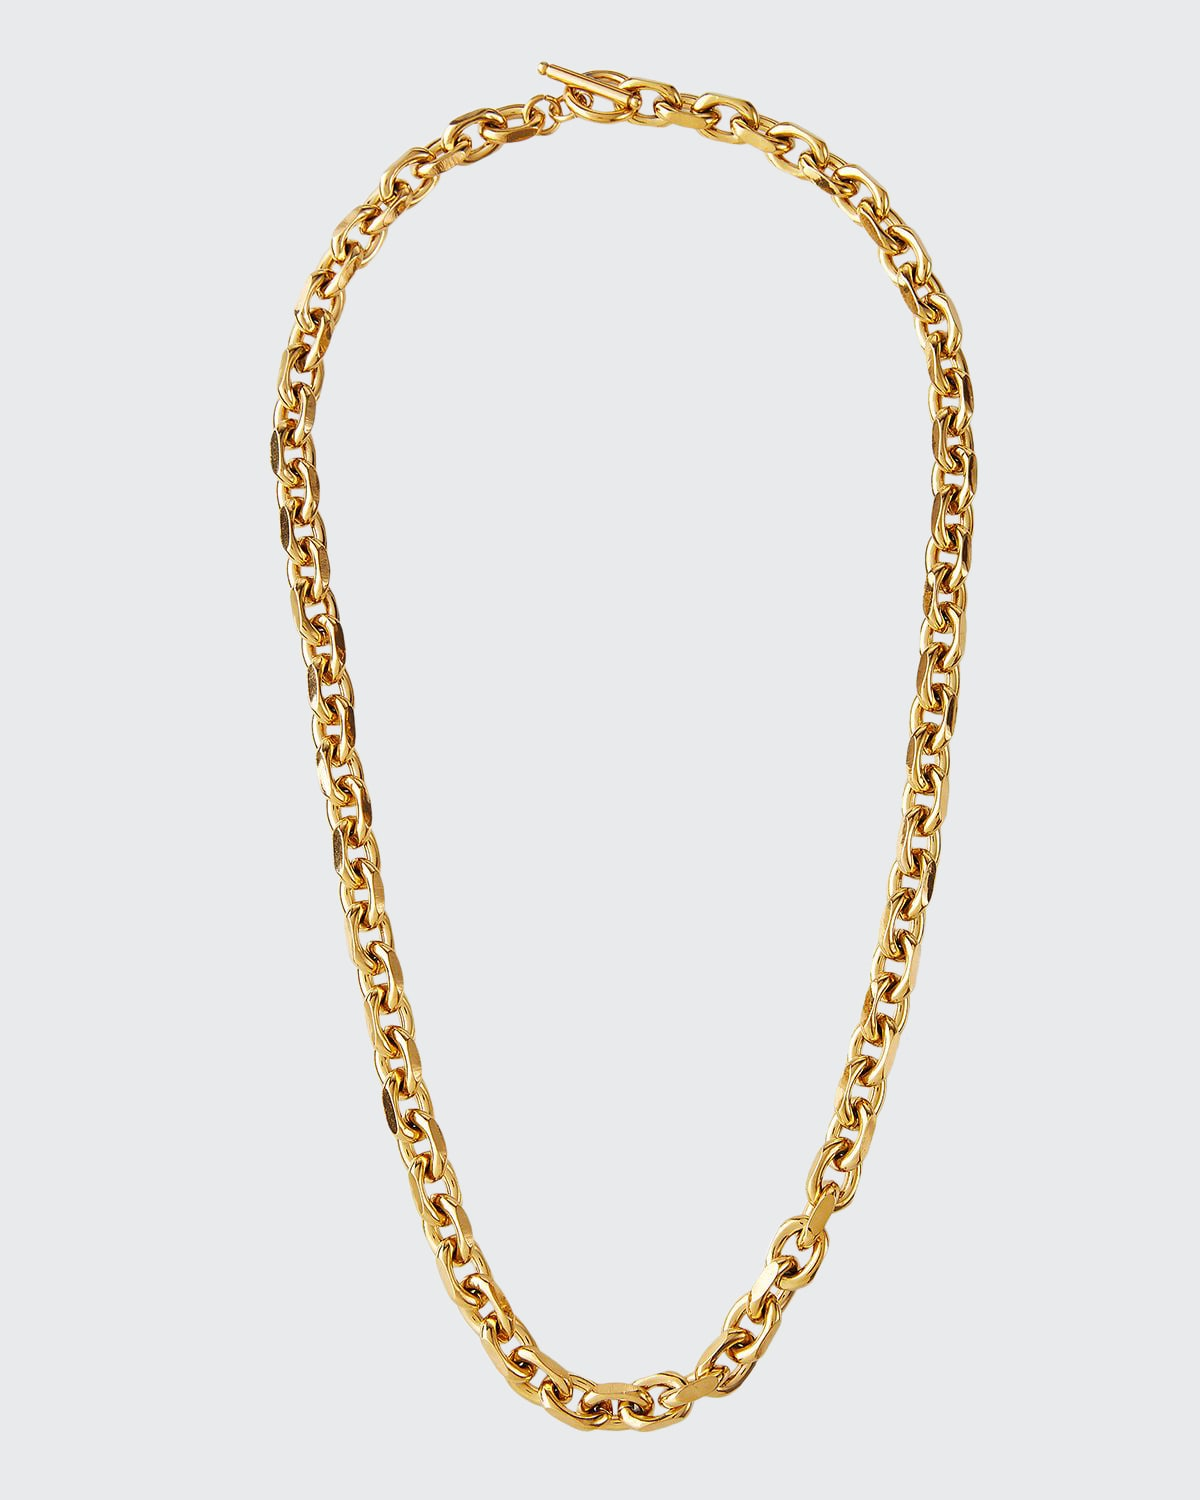 Nancy Toggle Chain Necklace